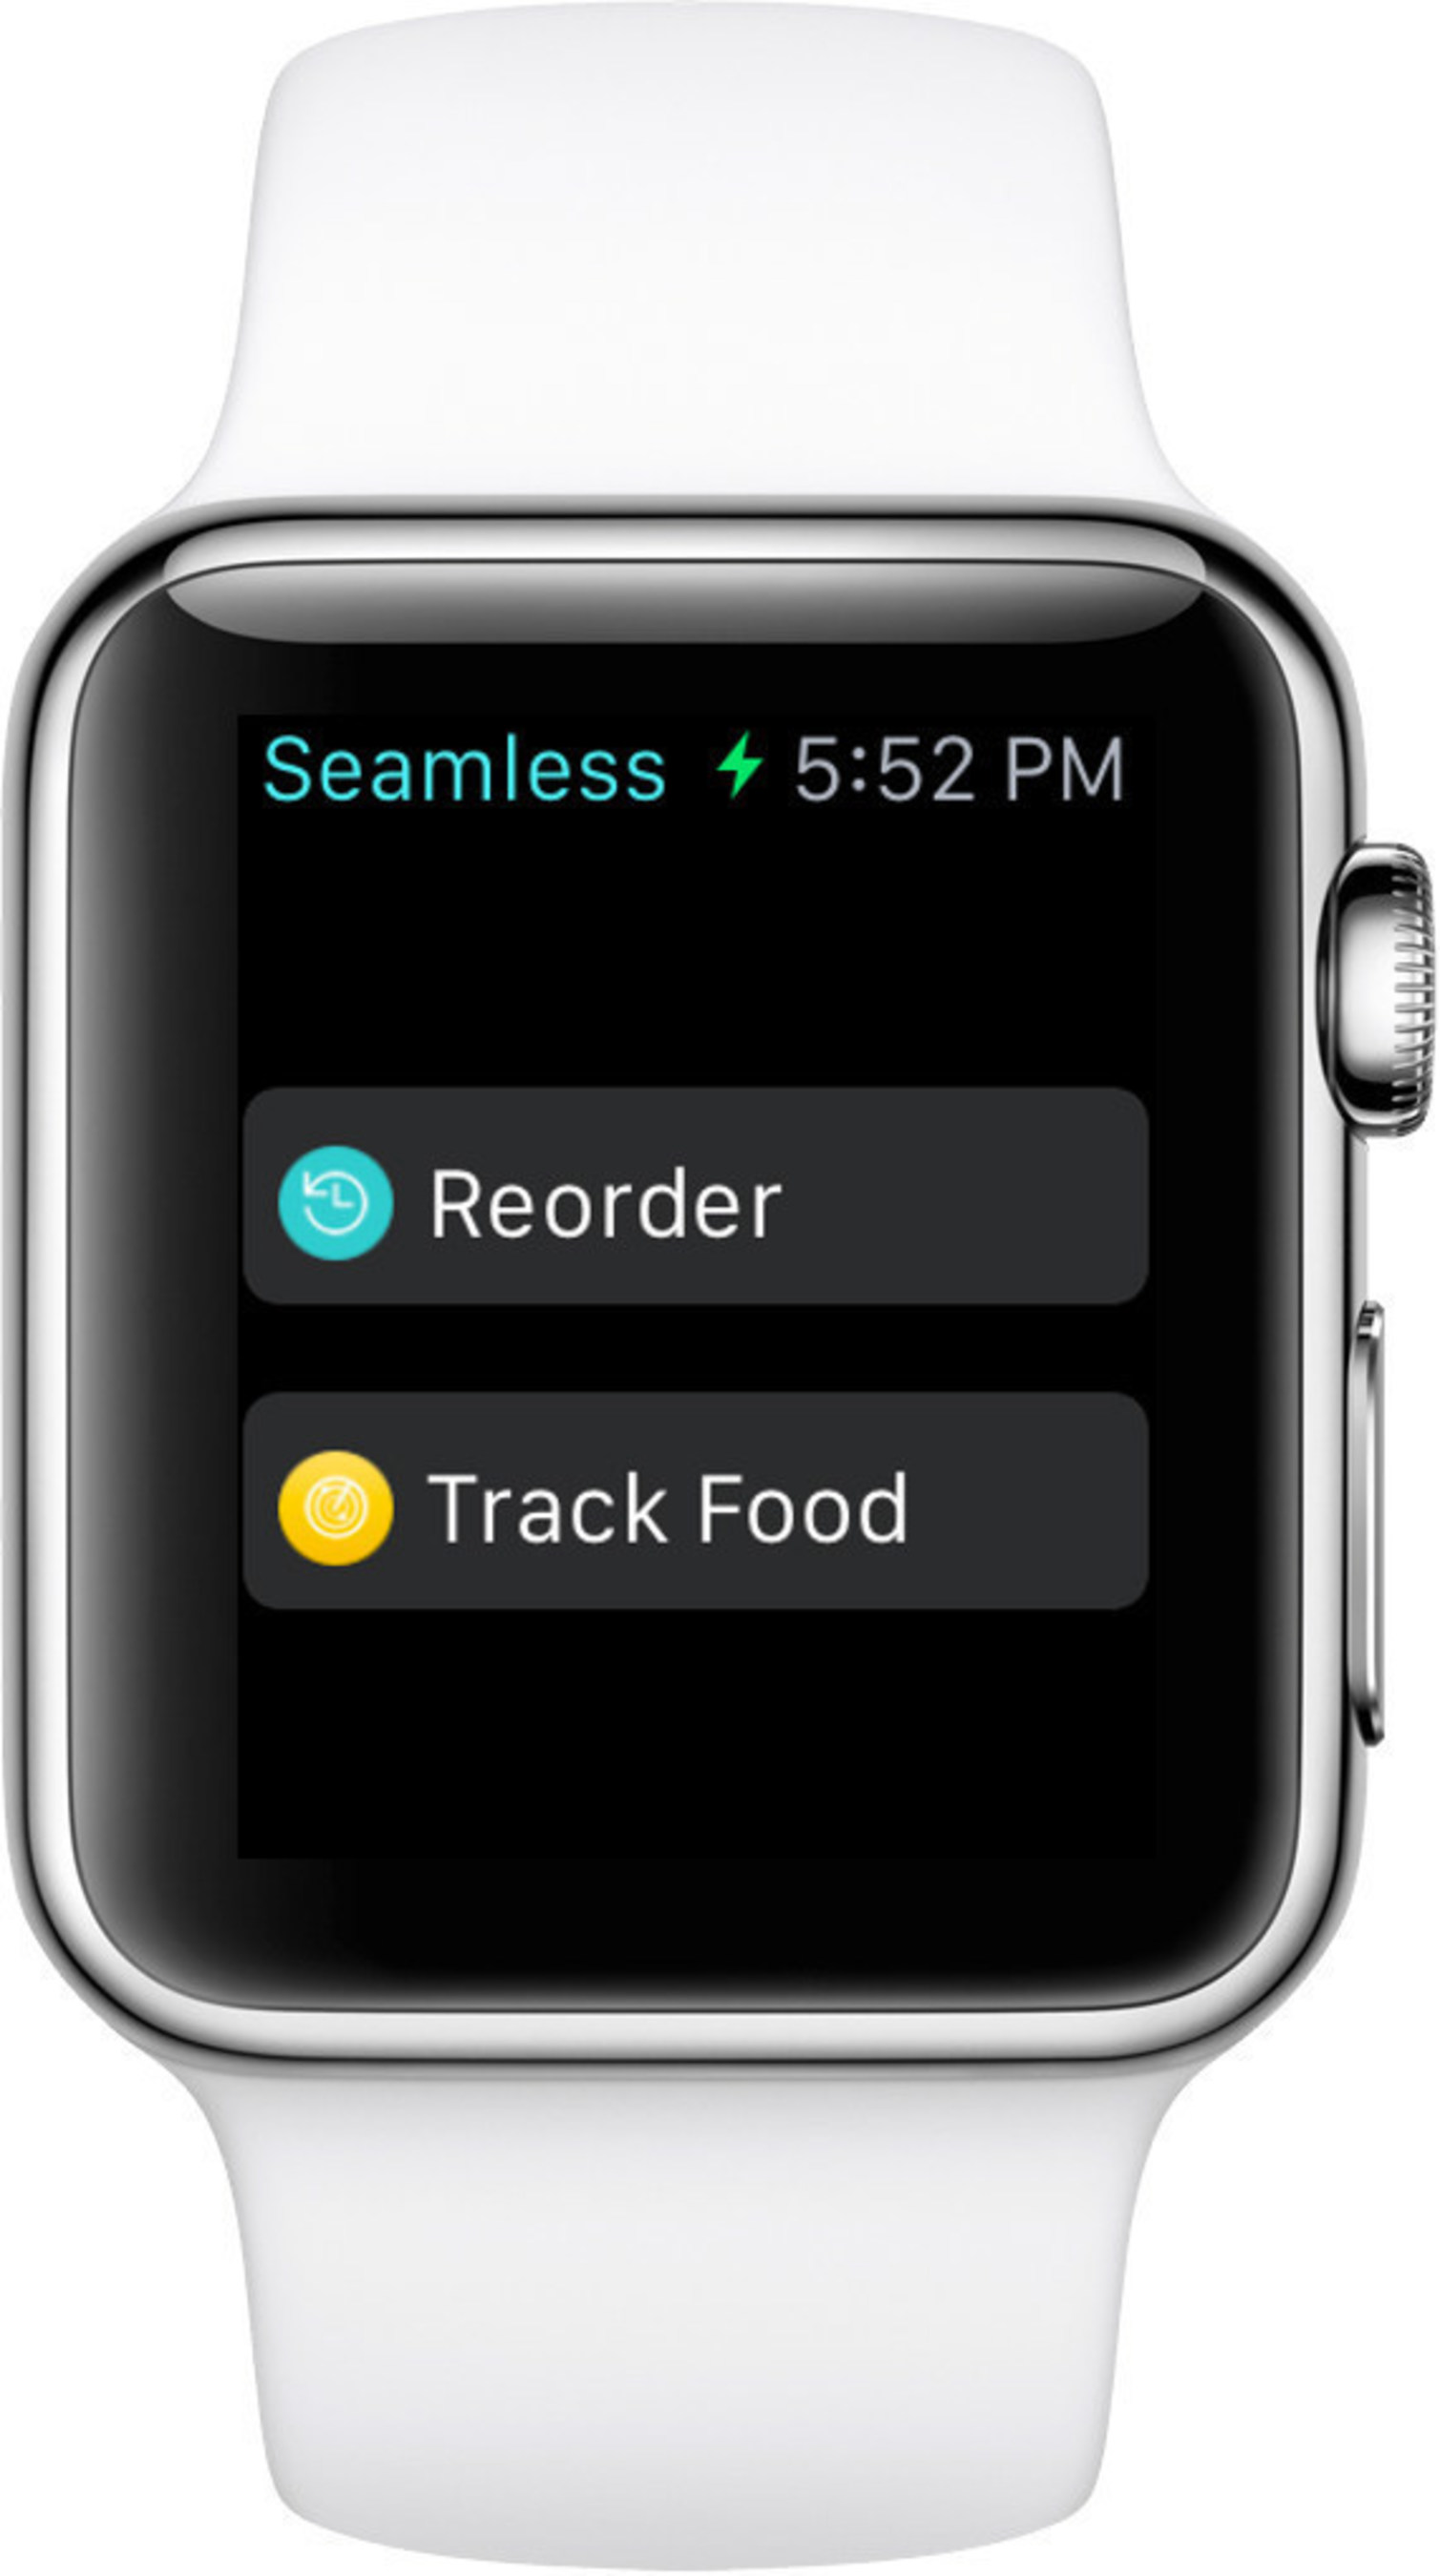 The Seamless Apple Watch app allows diners to reorder food and track orders.